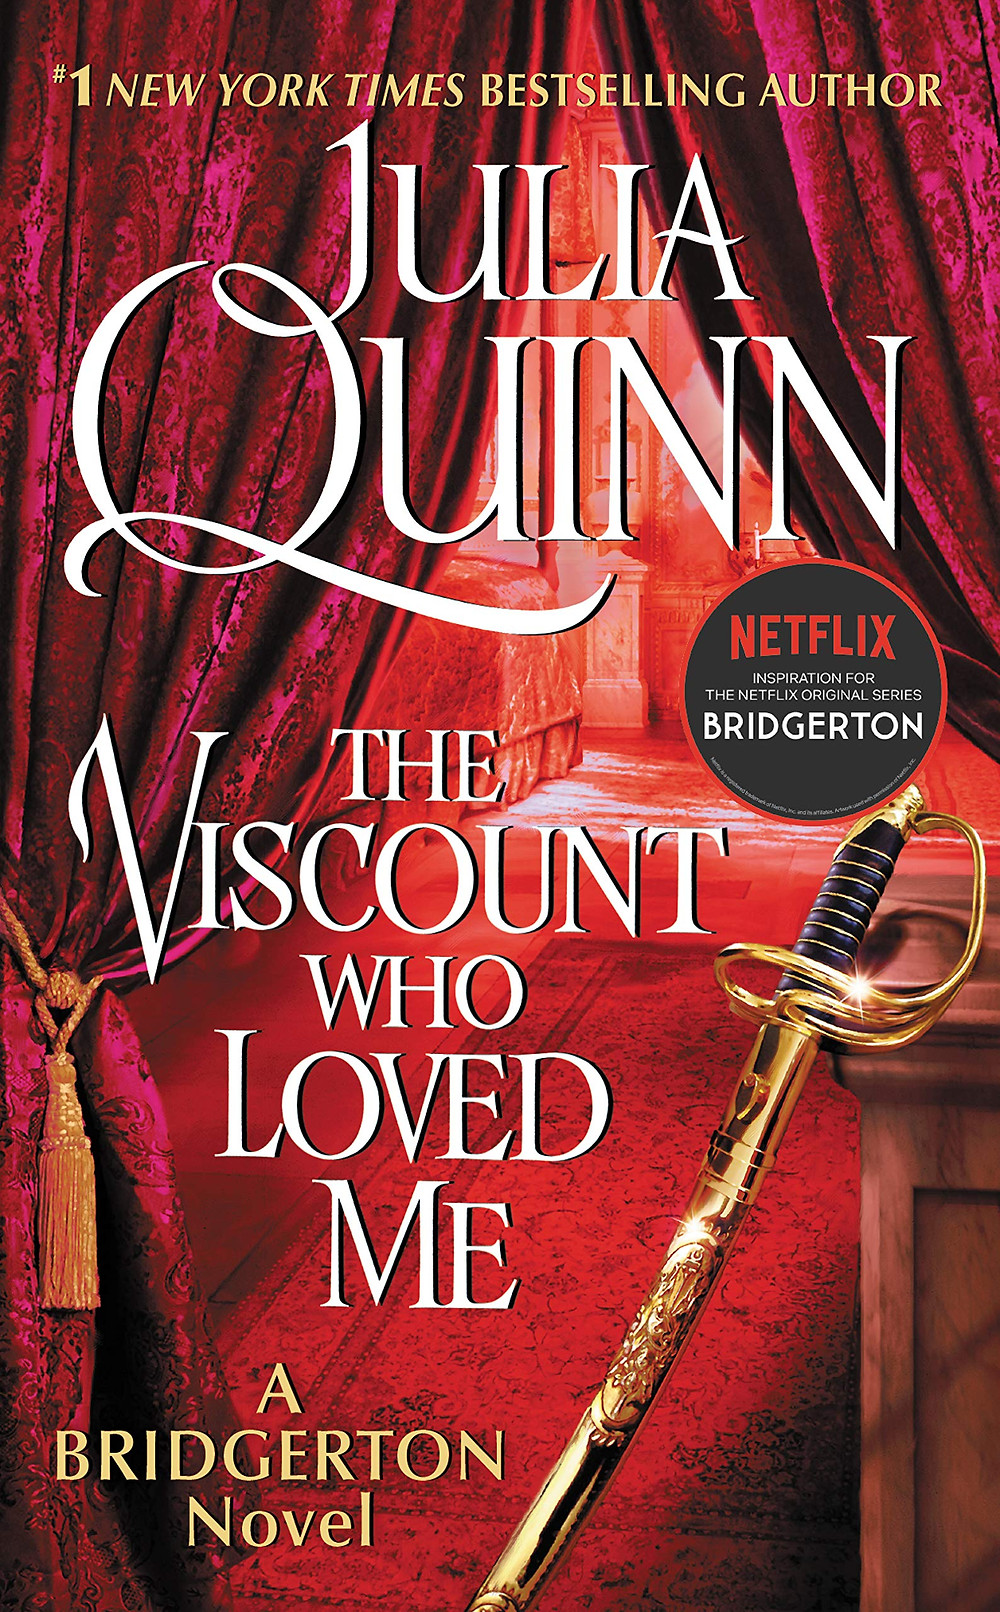 """The cover of """"The Viscount Who Loved Me"""" by Julia Quinn"""